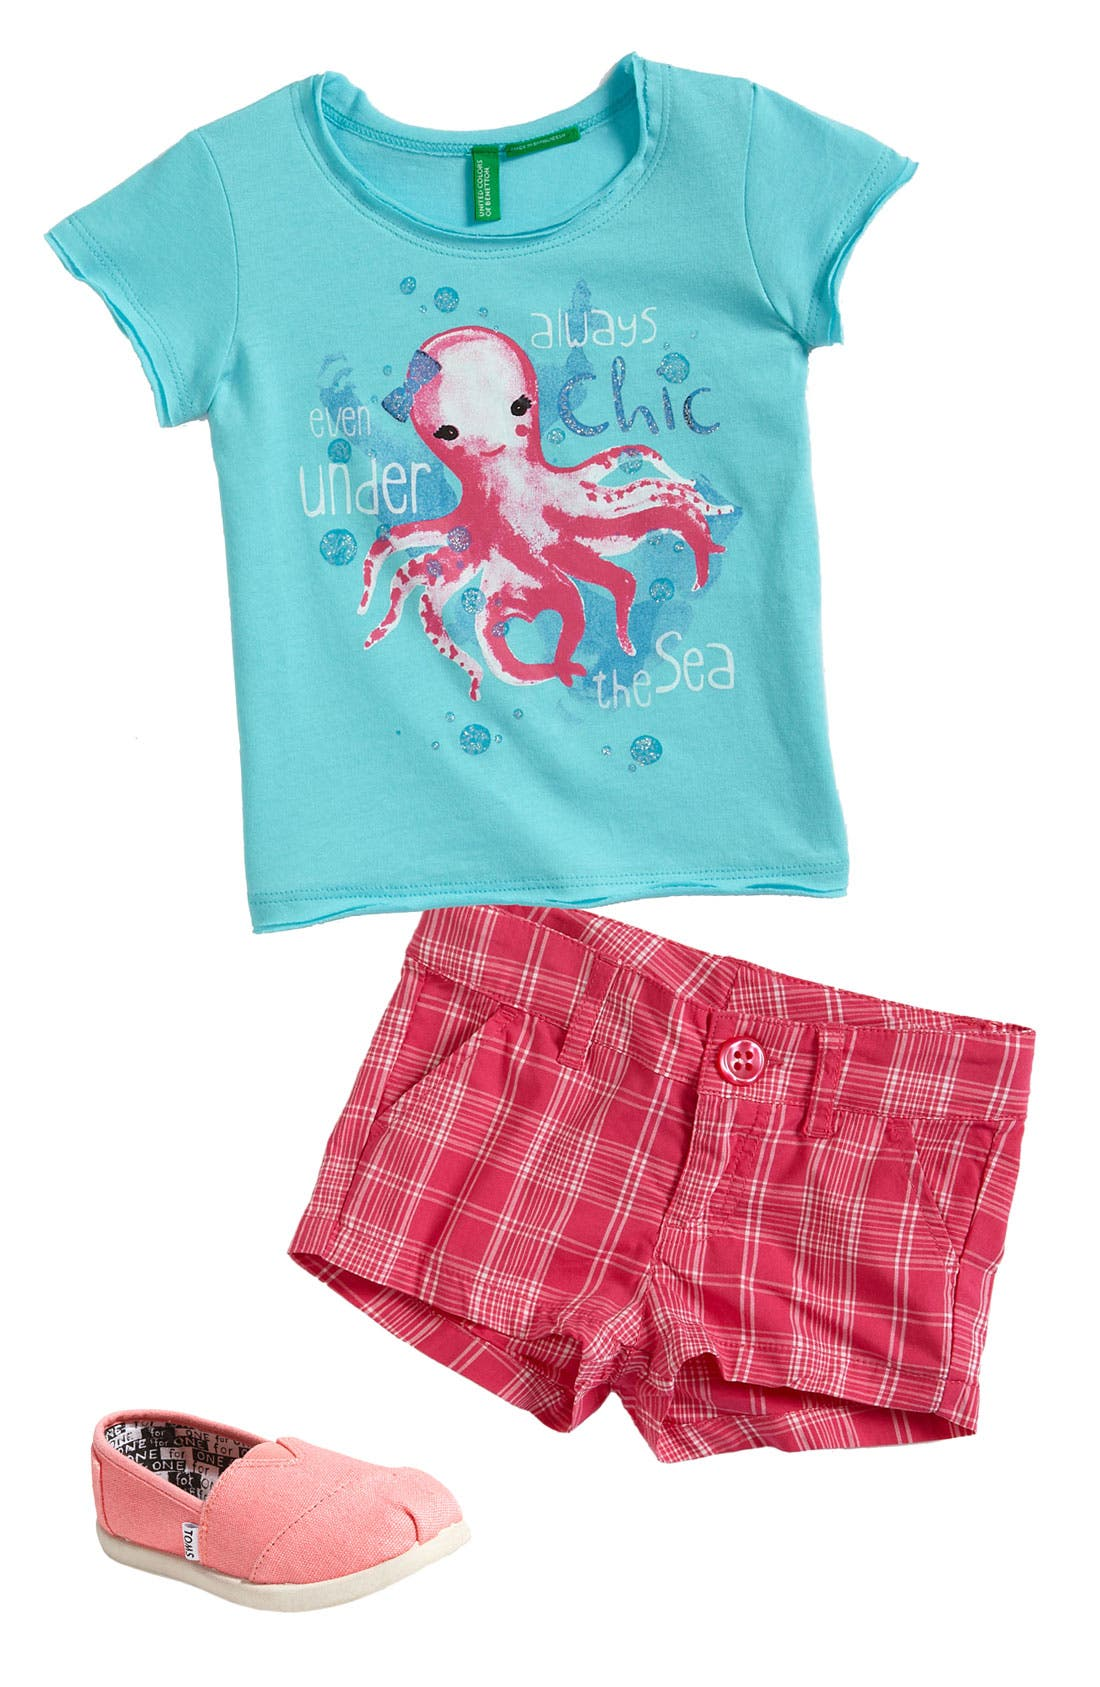 Main Image - United Colors of Benetton Kids Tee & Shorts (Toddler)